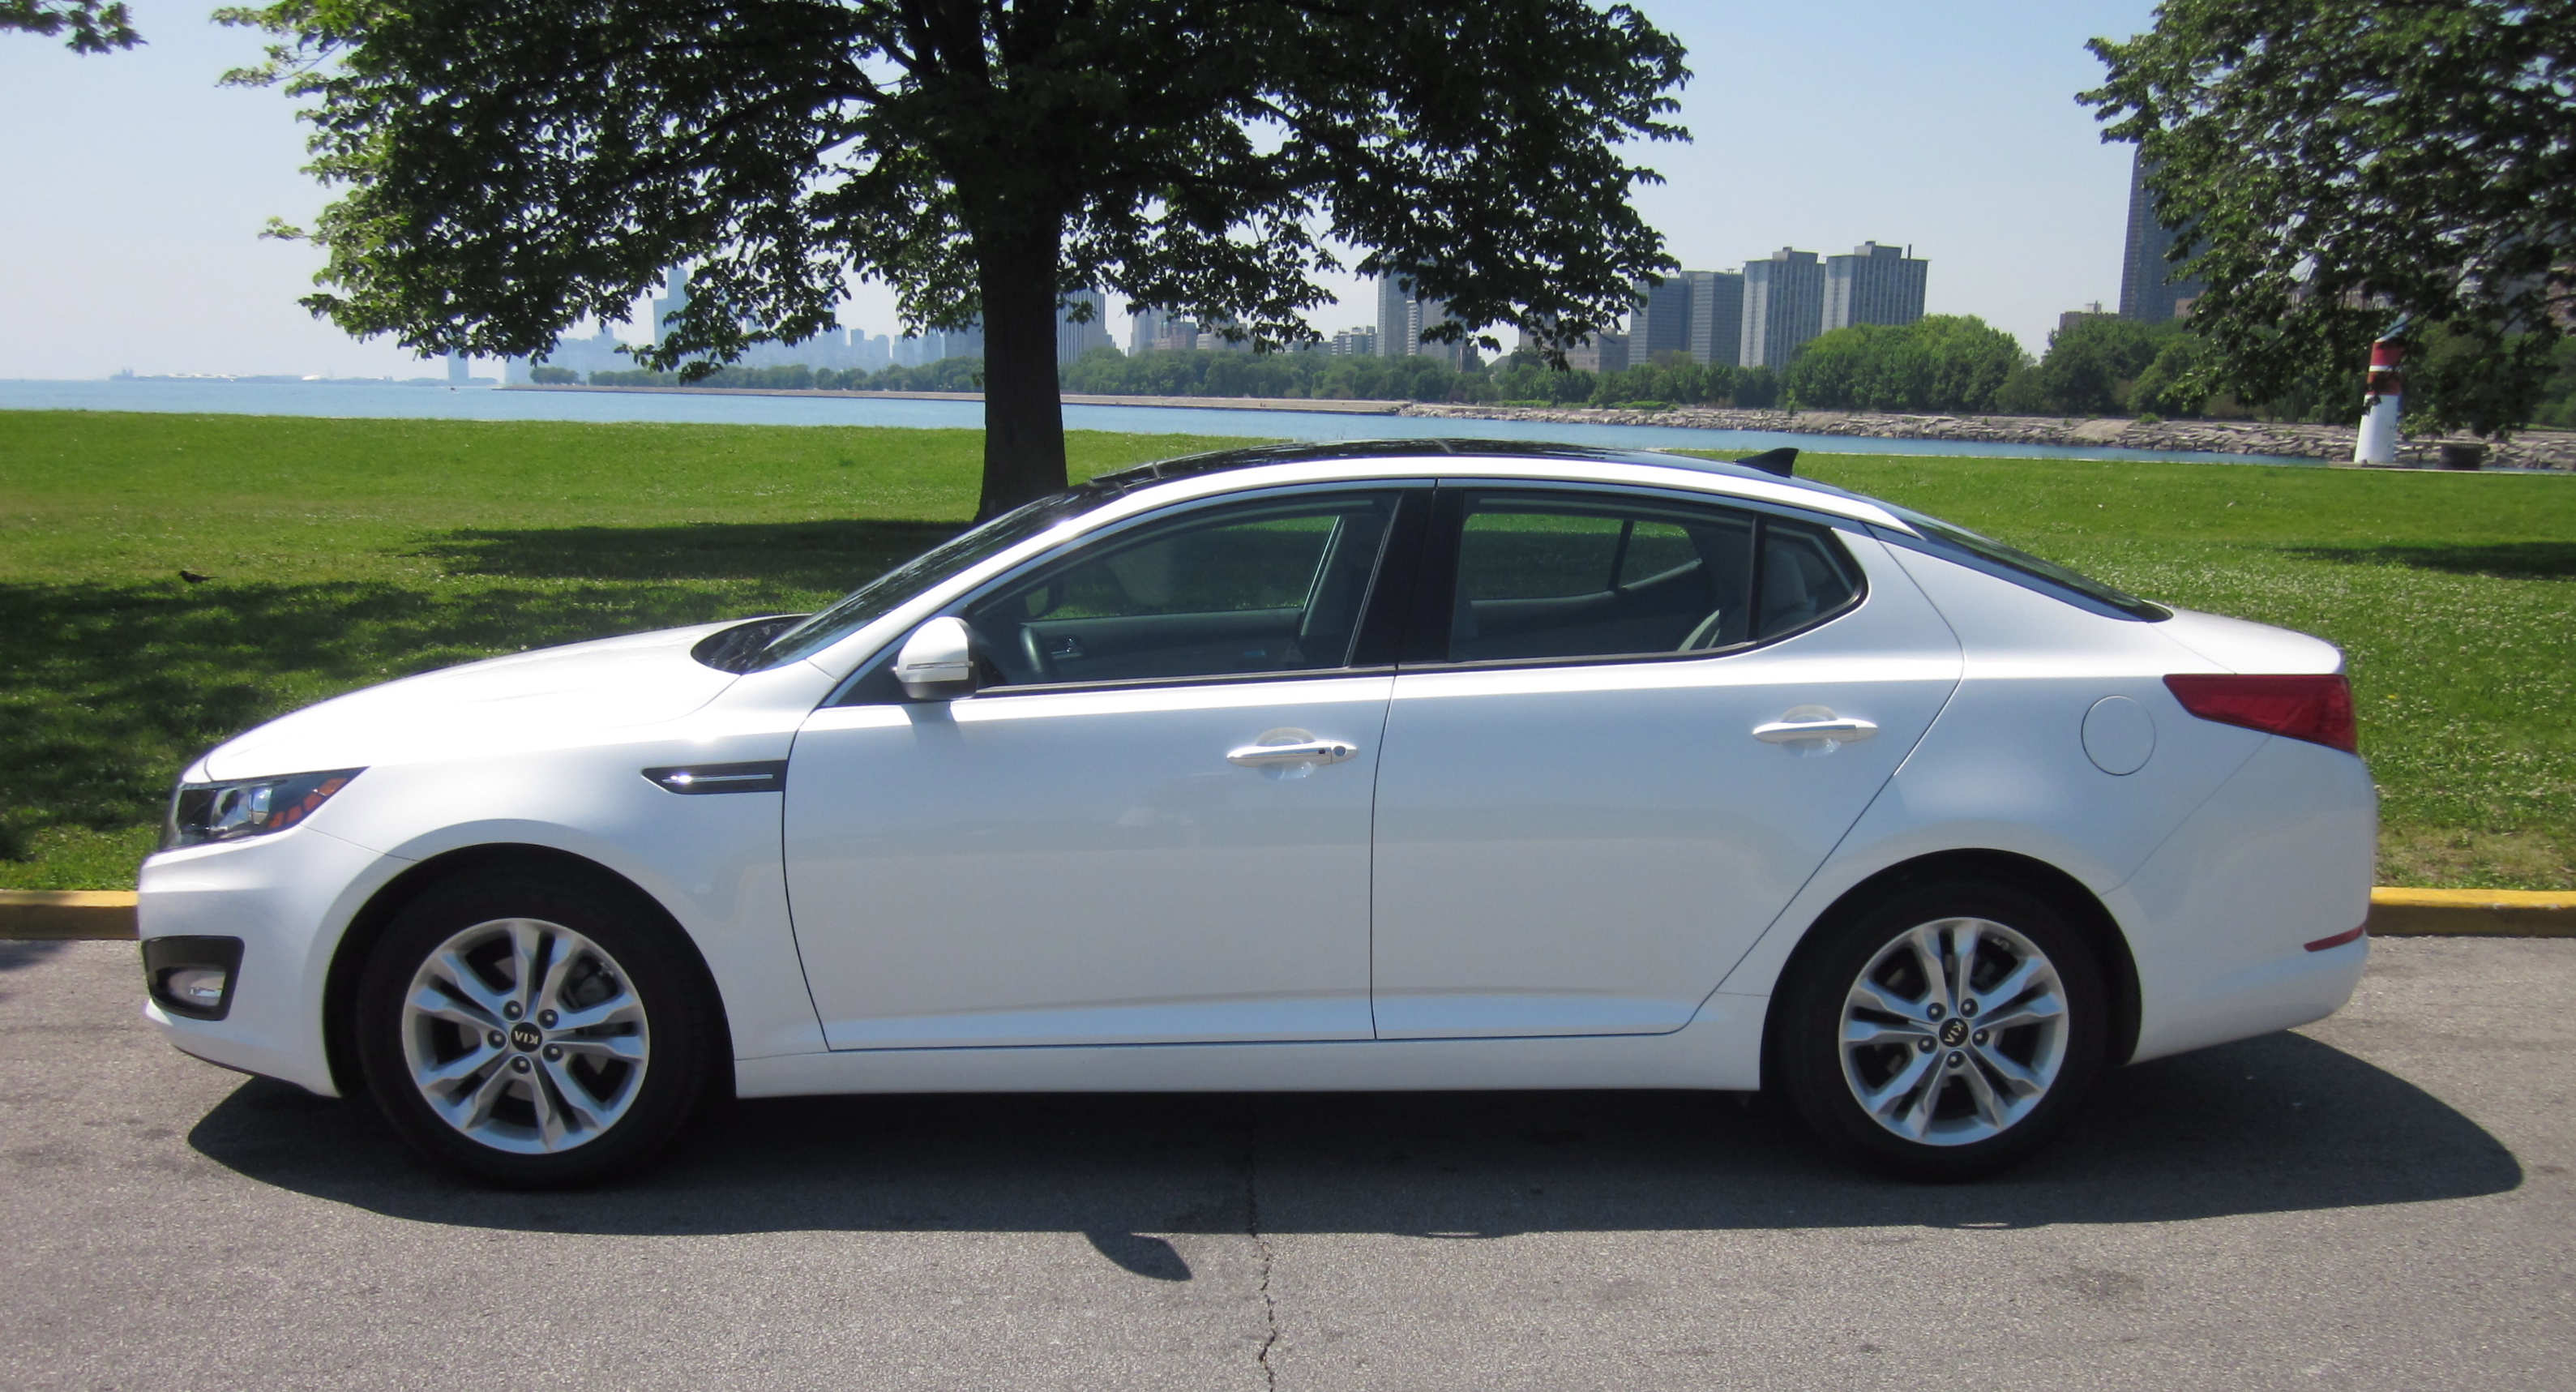 2011 kia optima give pause at the letter k karp automotive 2011 kia optima select to view enlarged photo sciox Images